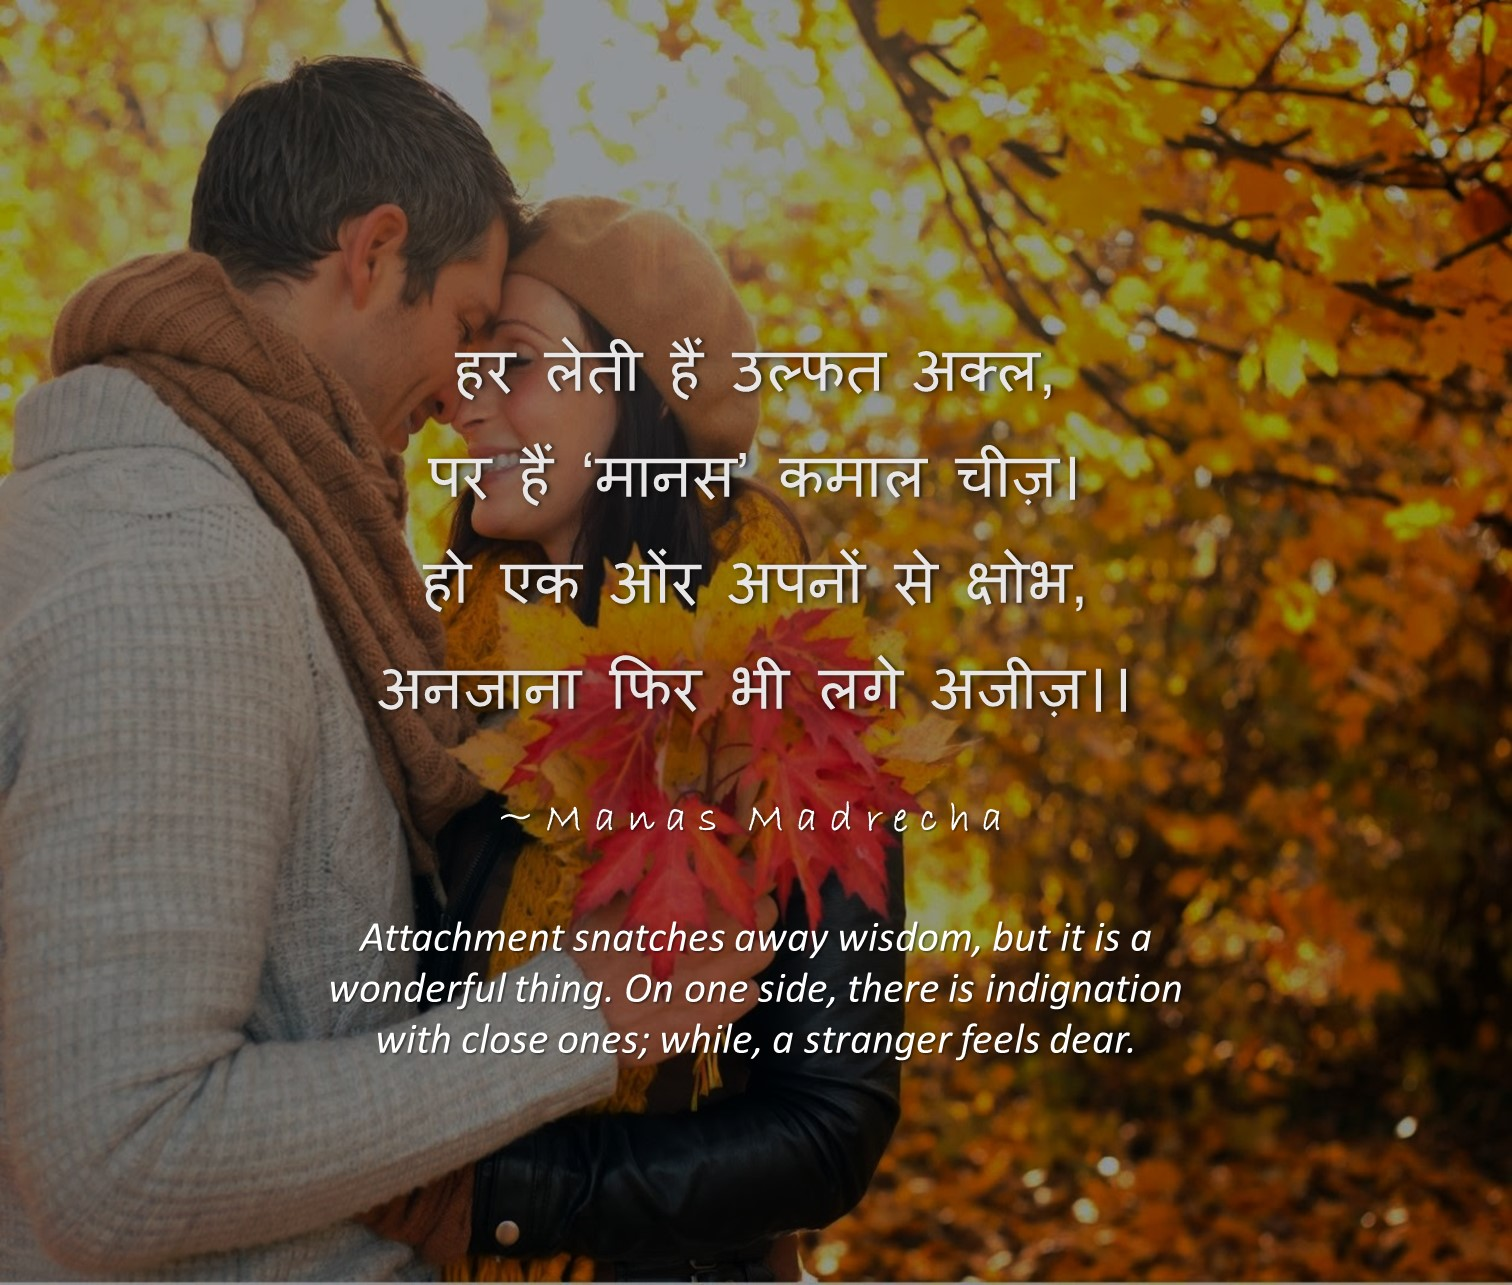 poem on love, Manas Madrecha, Manas Madrecha poems, poems by Manas Madrecha, Manas Madrecha quotes, love quotes, quotes on love, Manas Madrecha blog, simplifying universe, teenage quotes, teenage poem, youth poem, youth quotes, quotes on youth, romantic poem, beautiful girl, hot girl, girl looking, cute girl, pretty girl, handsome man, cute man, couple kissing, looking into eyes, looking into eyes love, elder couple, couple in nature